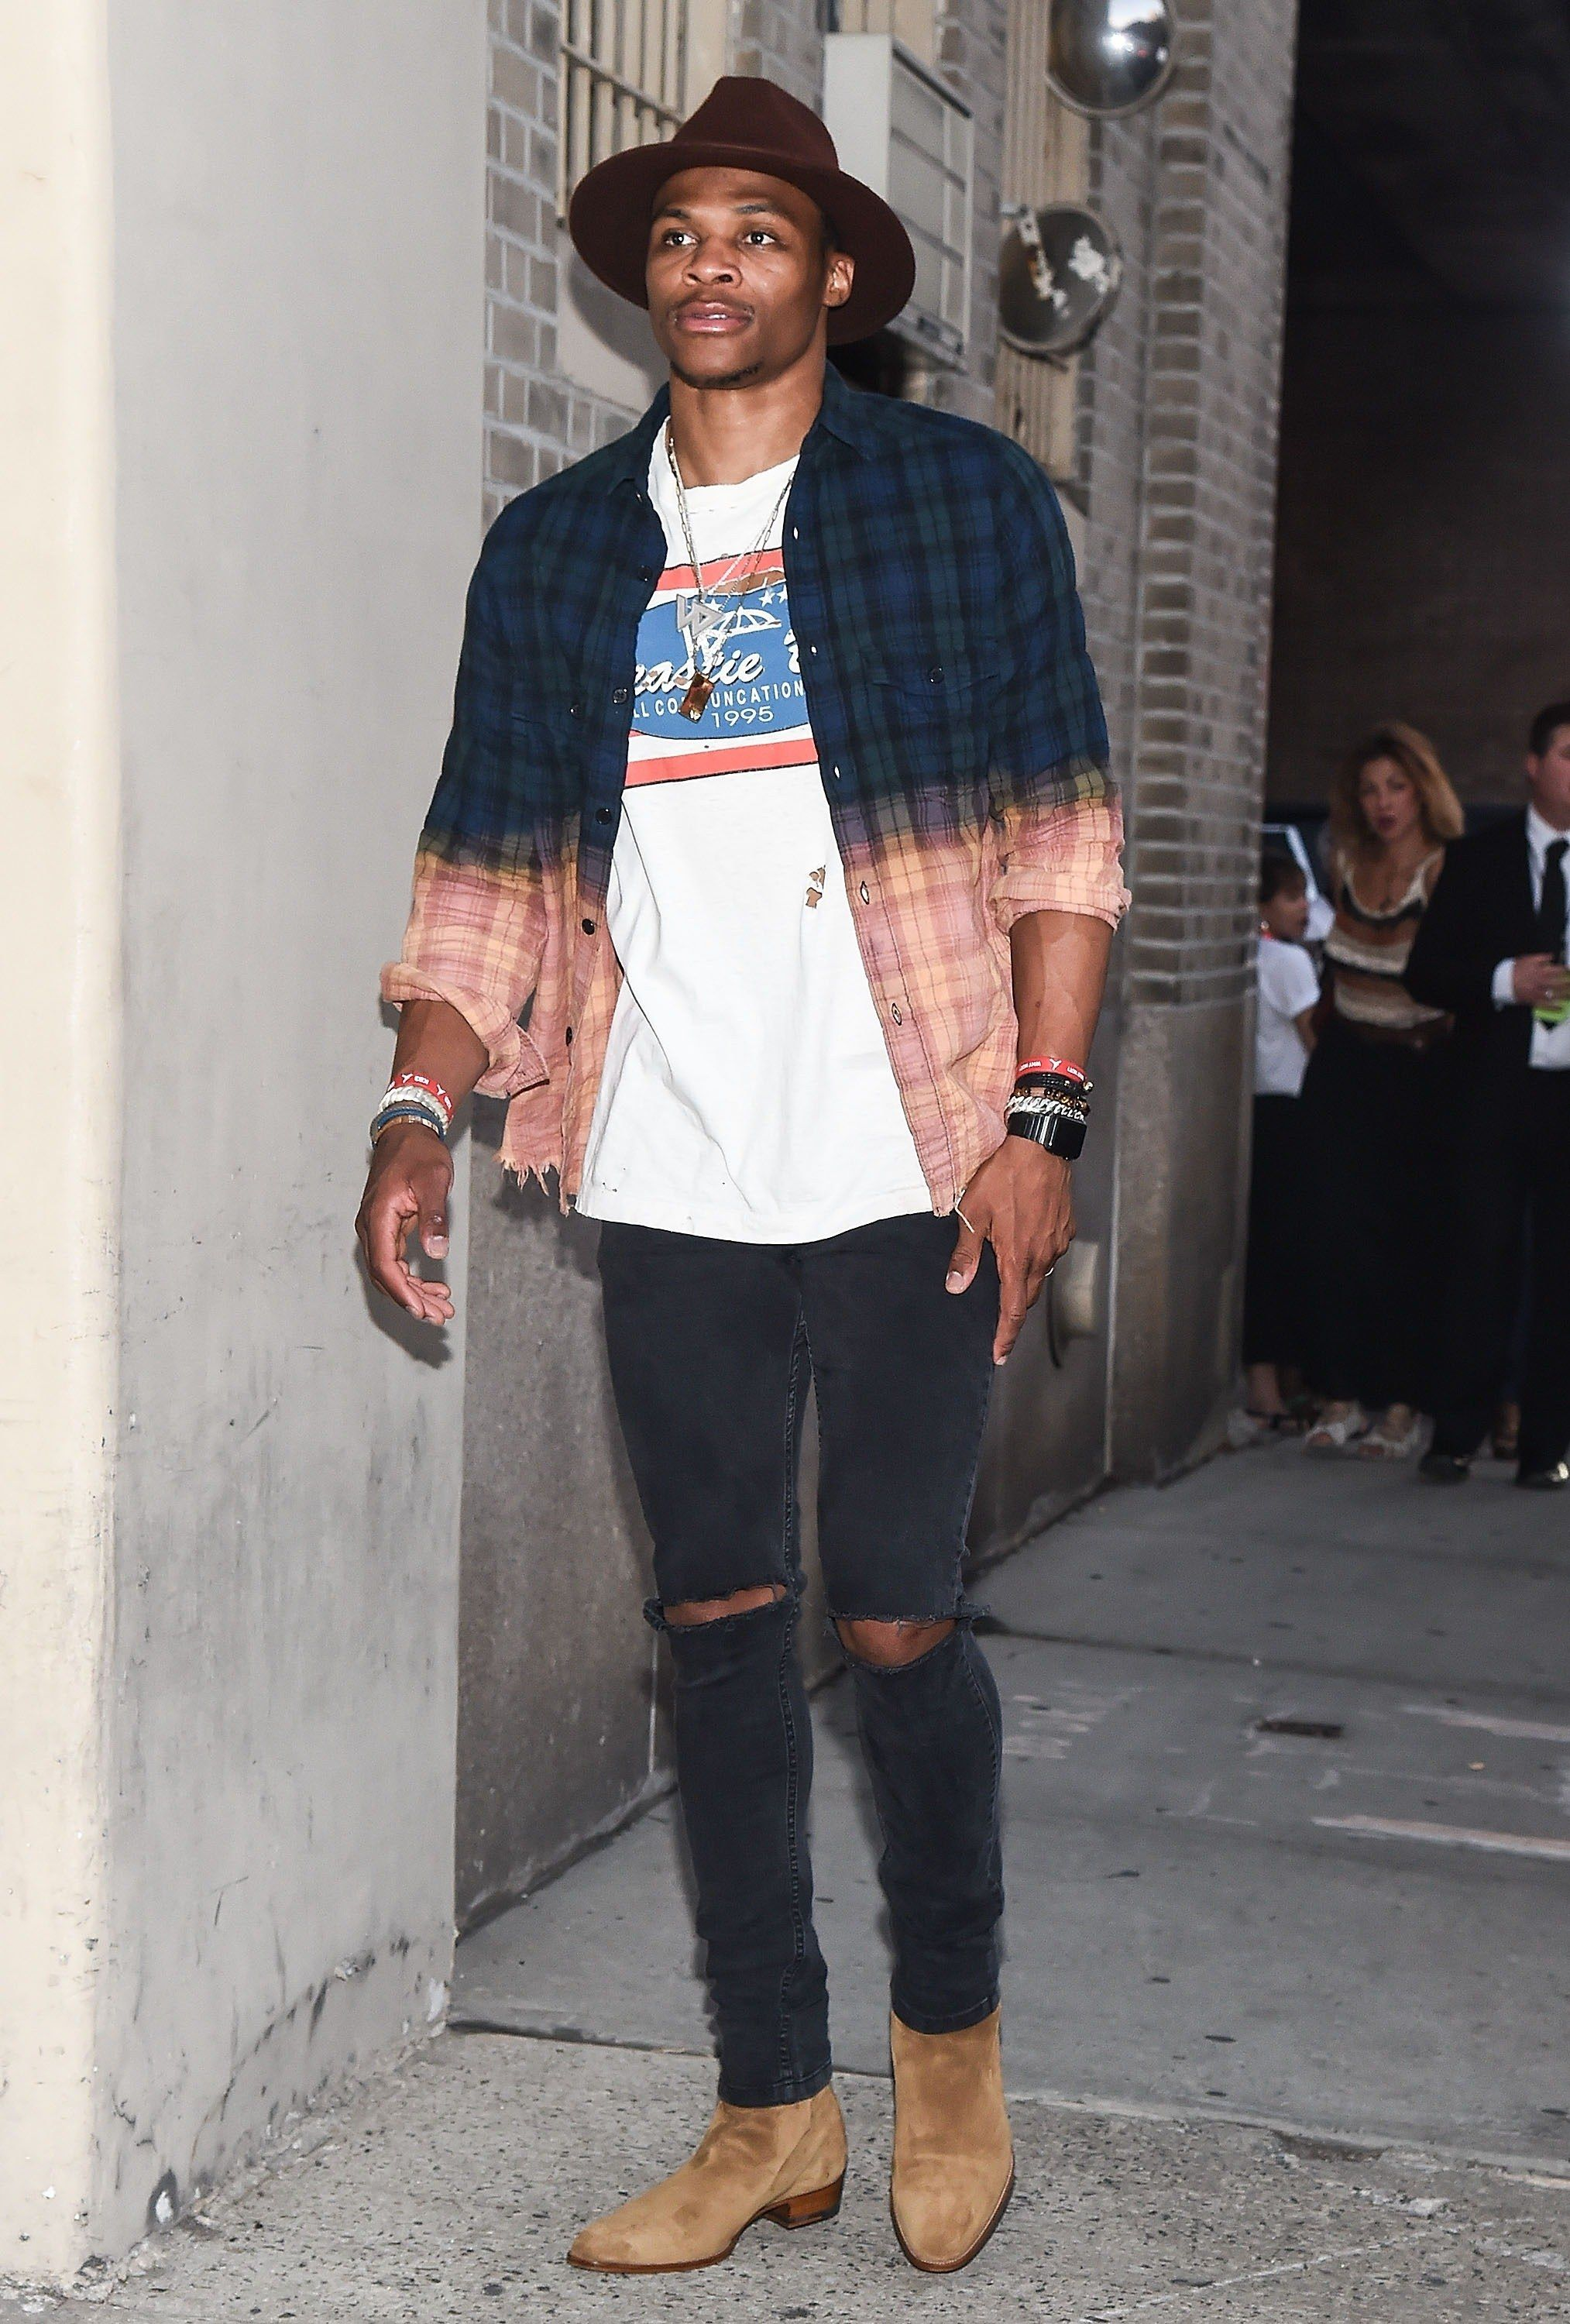 b8e8df42d0 17 Looks Only Russell Westbrook Could Pull Off Photos